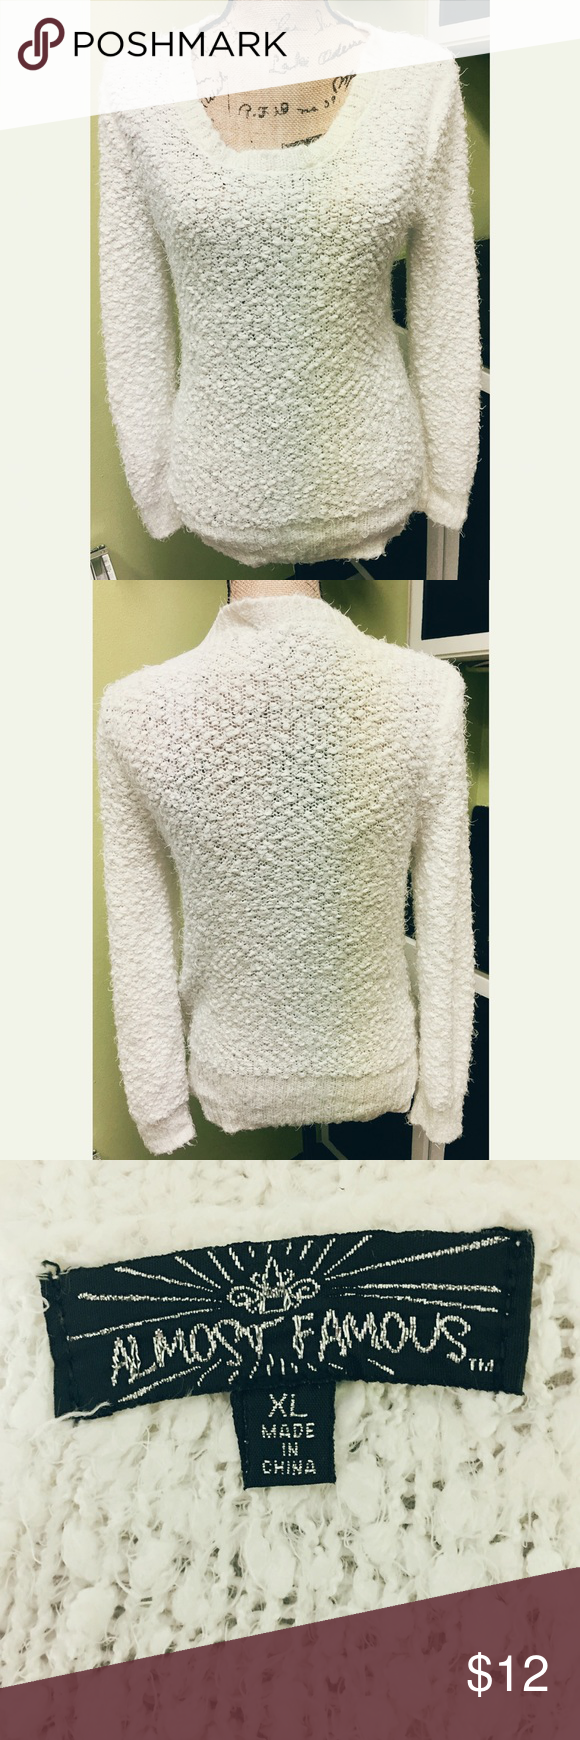 Almost Famous Fuzzy White Sweater XL Soft & Fuzzy Almost Famous White Popcorn Sweater size XL in good condition. Almost Famous Sweaters Crew & Scoop Necks